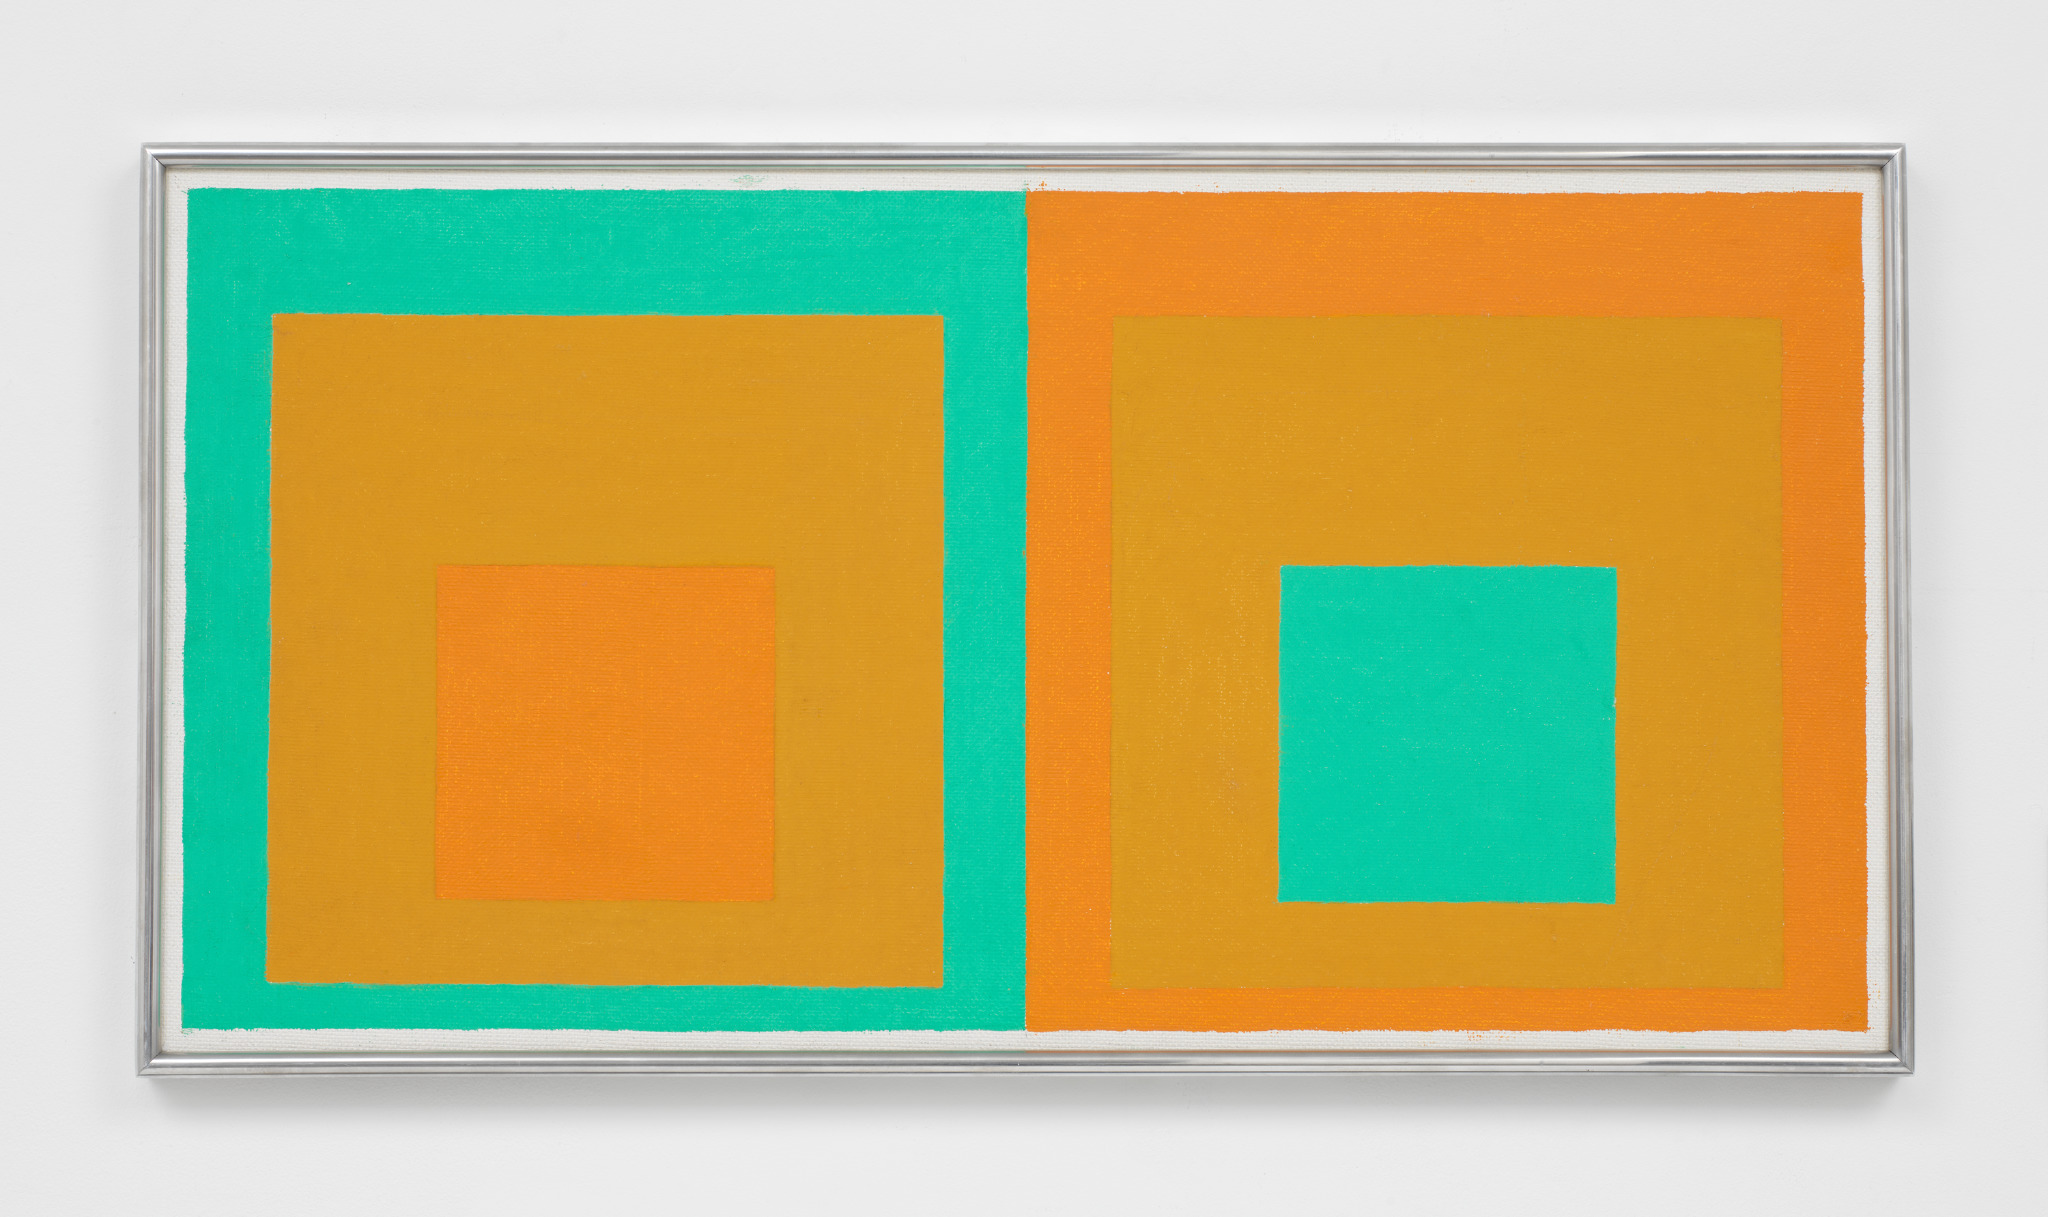 Josef Albers, Double Homage to the Square, 1957, oil on masonite, 16 x 31 inches (© 2018 The Josef and Anni Albers Foundation/Artists Rights Society (ARS), New York. Courtesy The Josef and Anni Albers Foundation and David Zwirner)